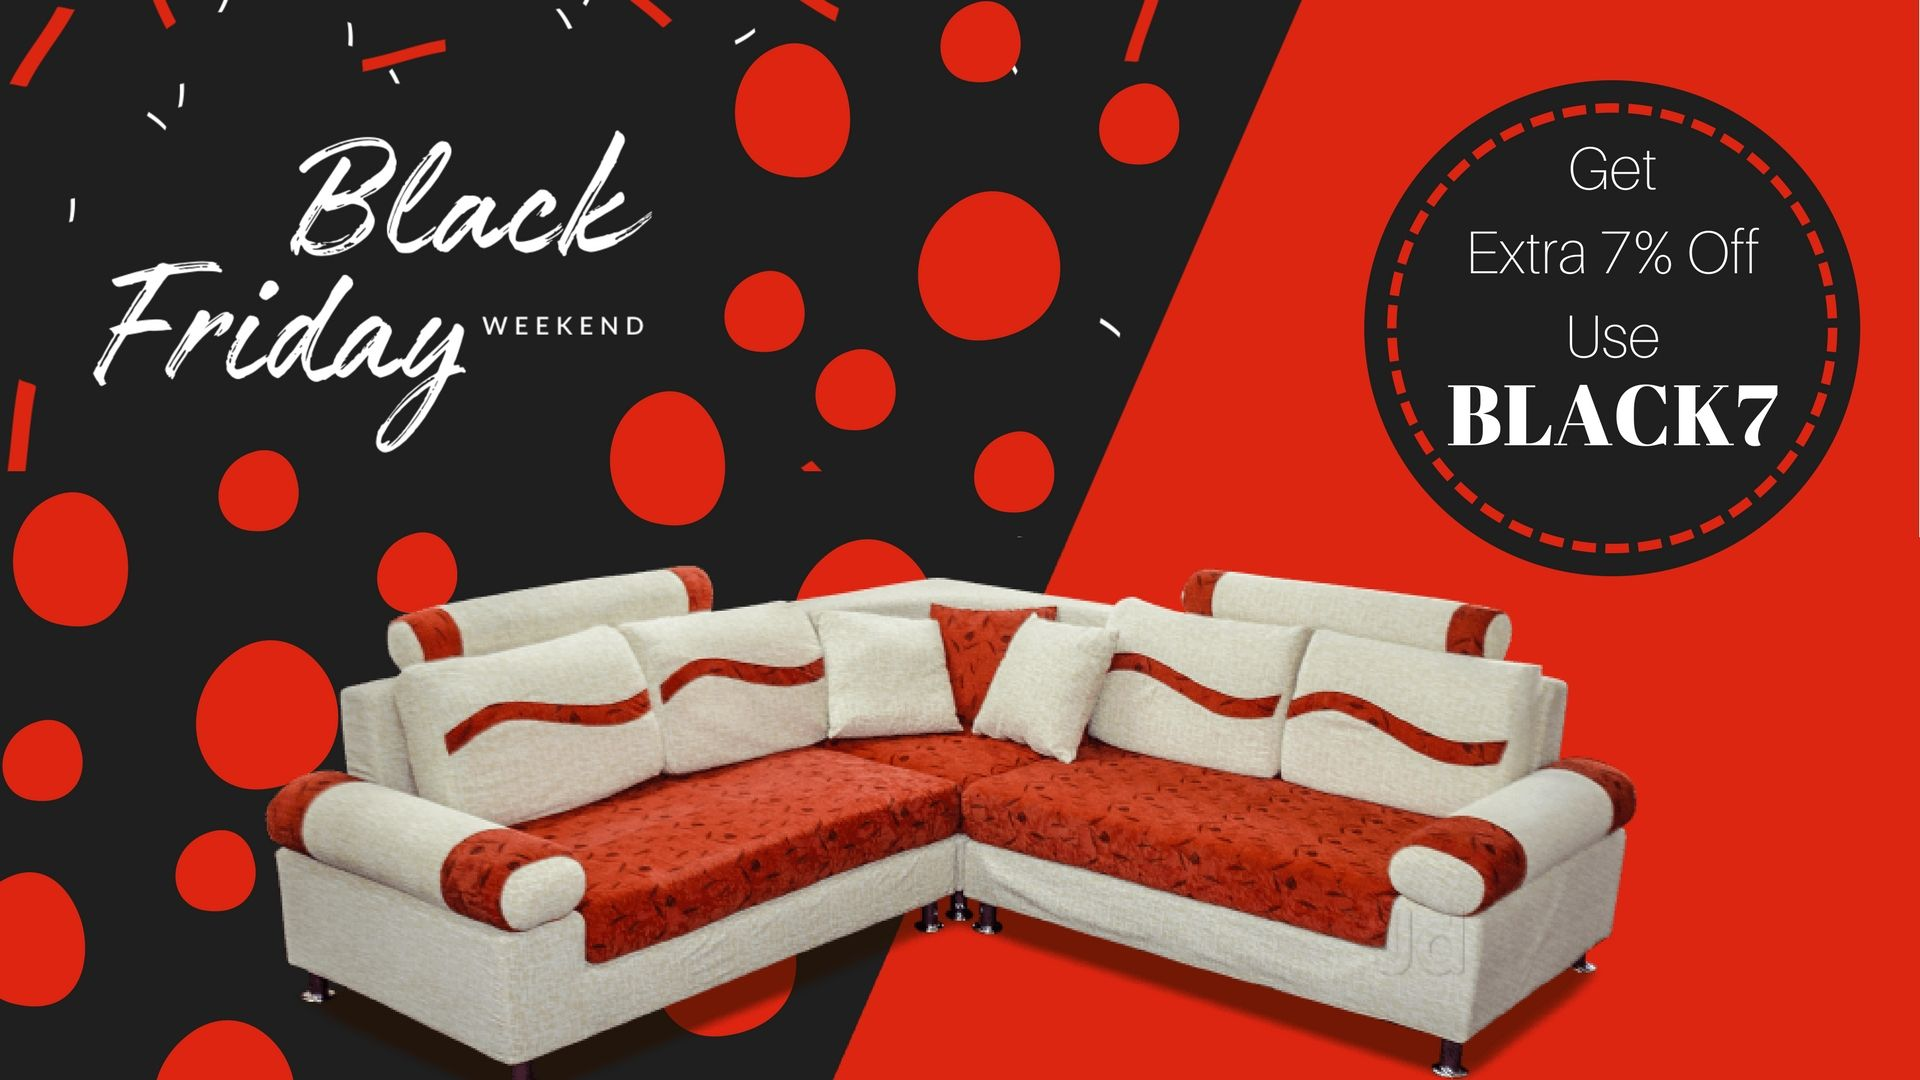 Black Friday 2018 Black Friday 2018 Black Friday Furniture Sale